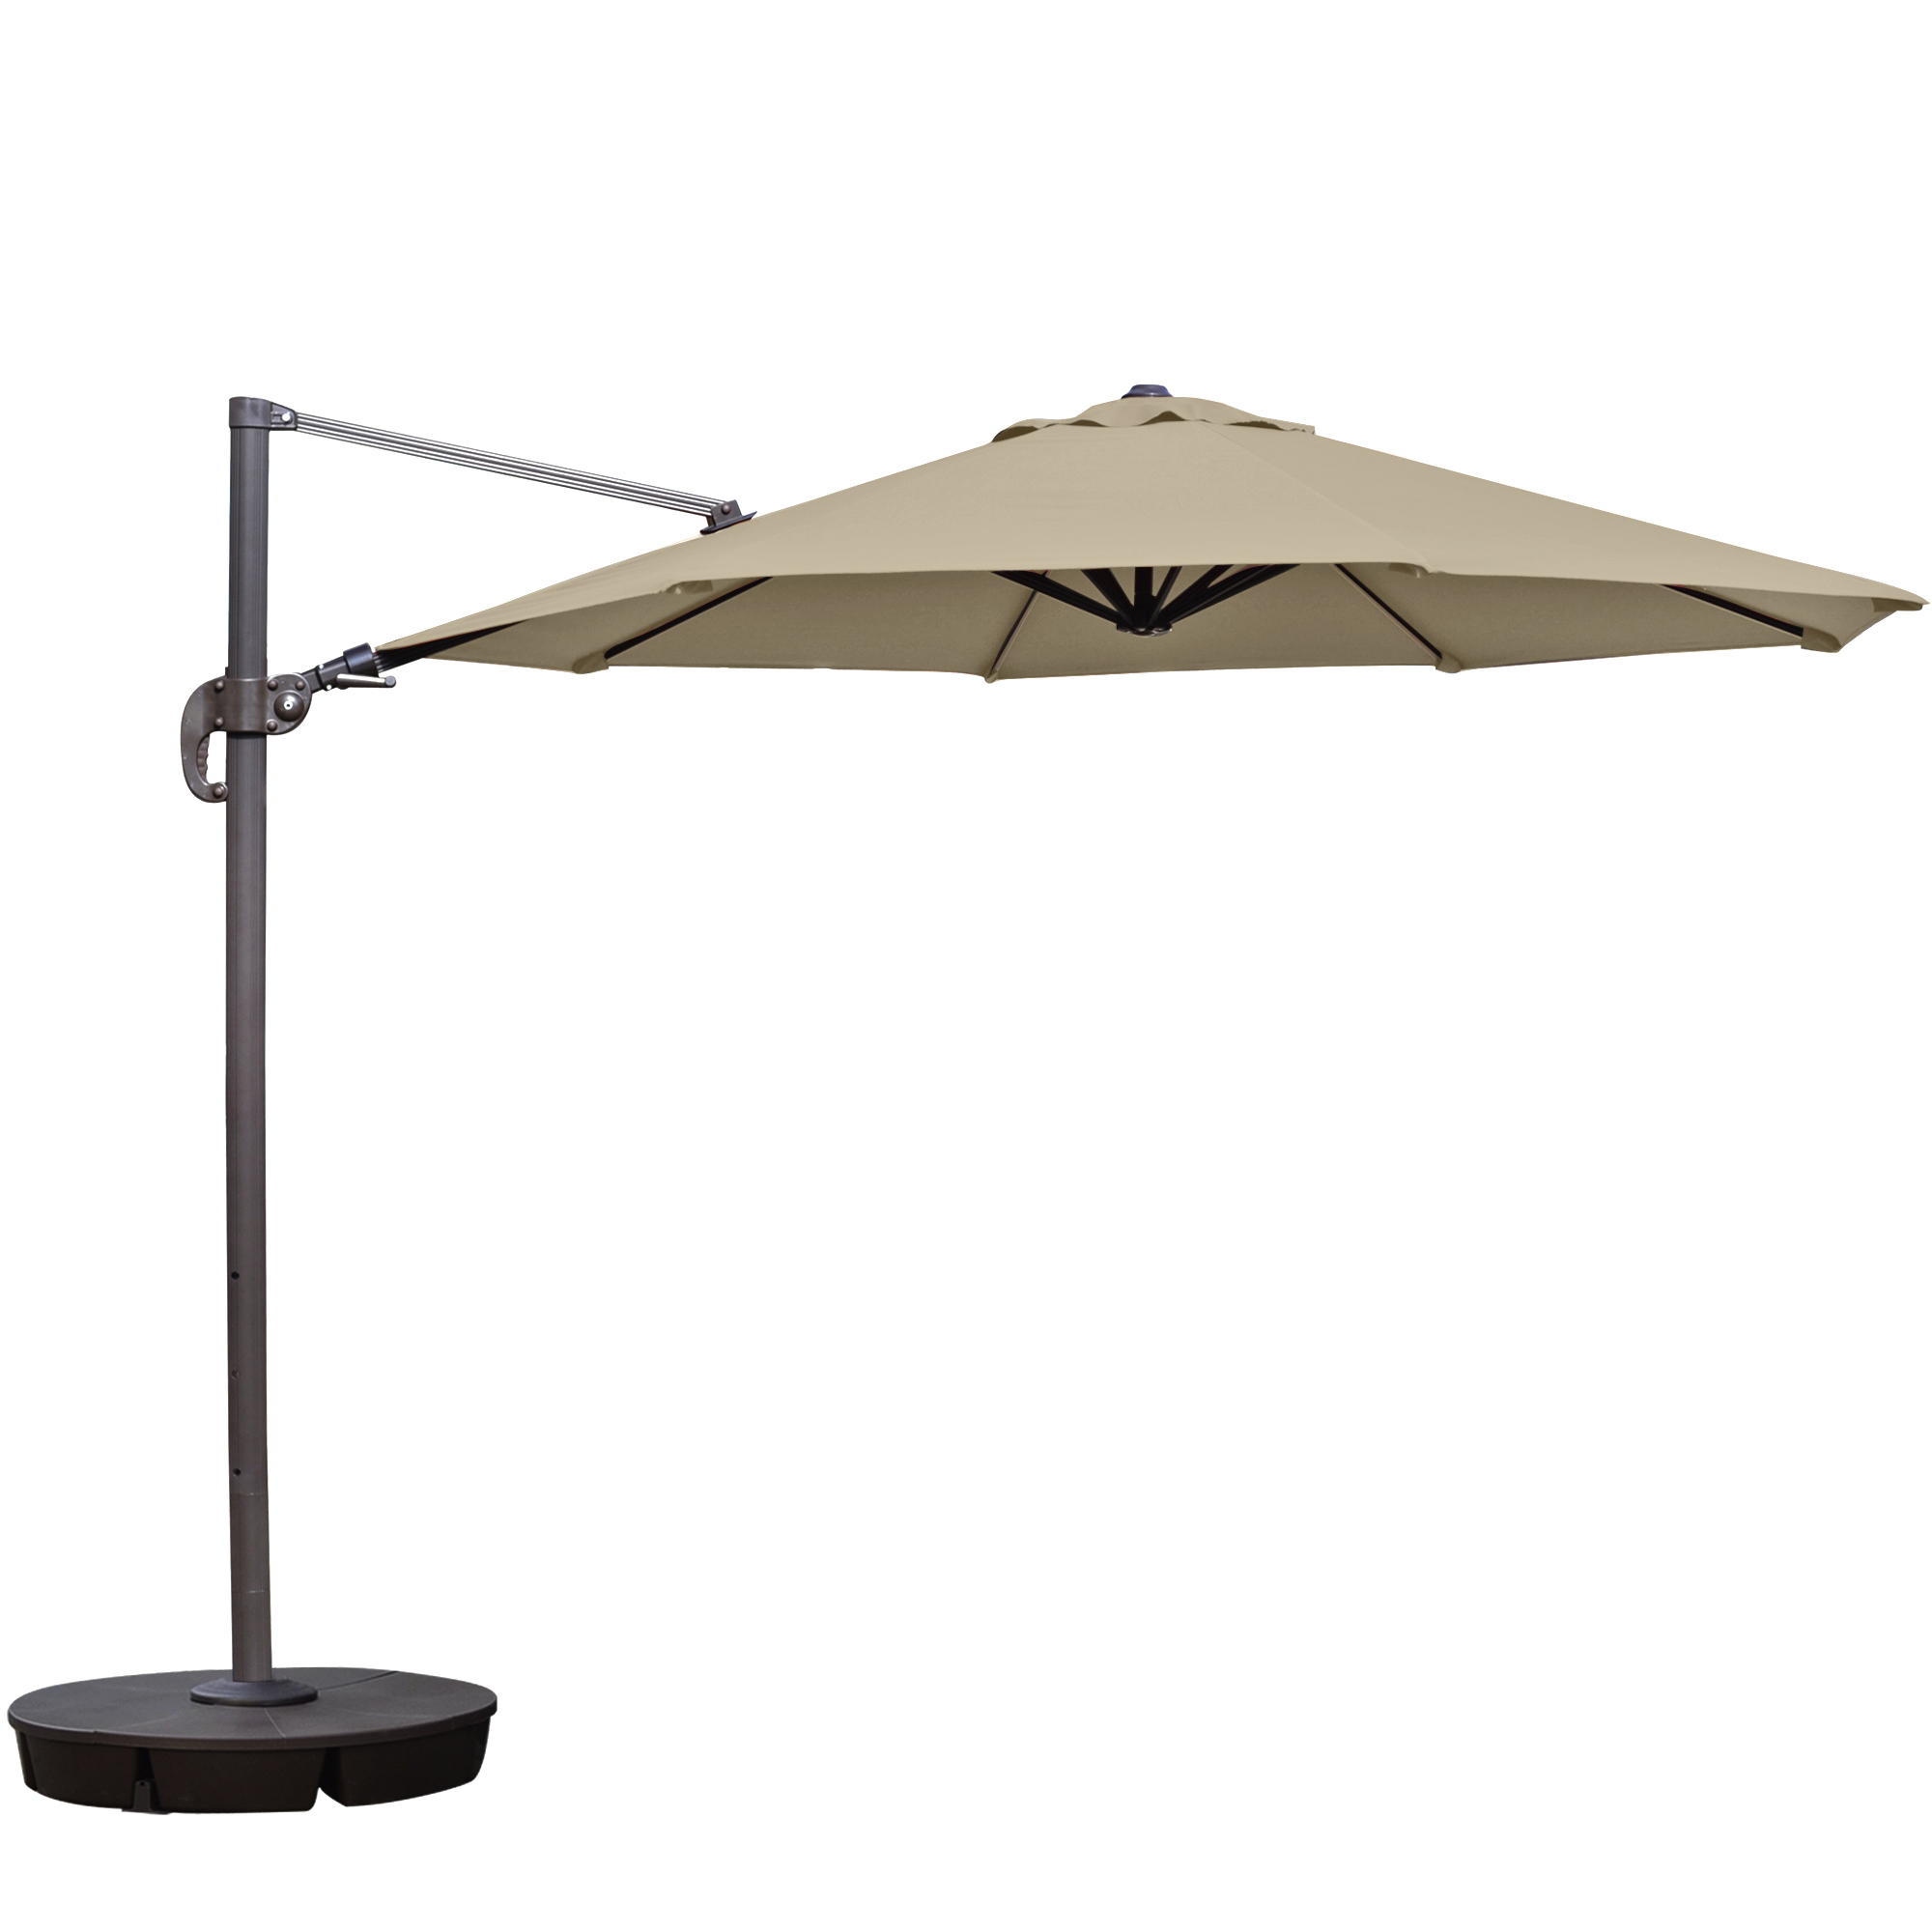 Island Umbrella Freeport 11 ft Octagonal Cantilever Patio Umbrella